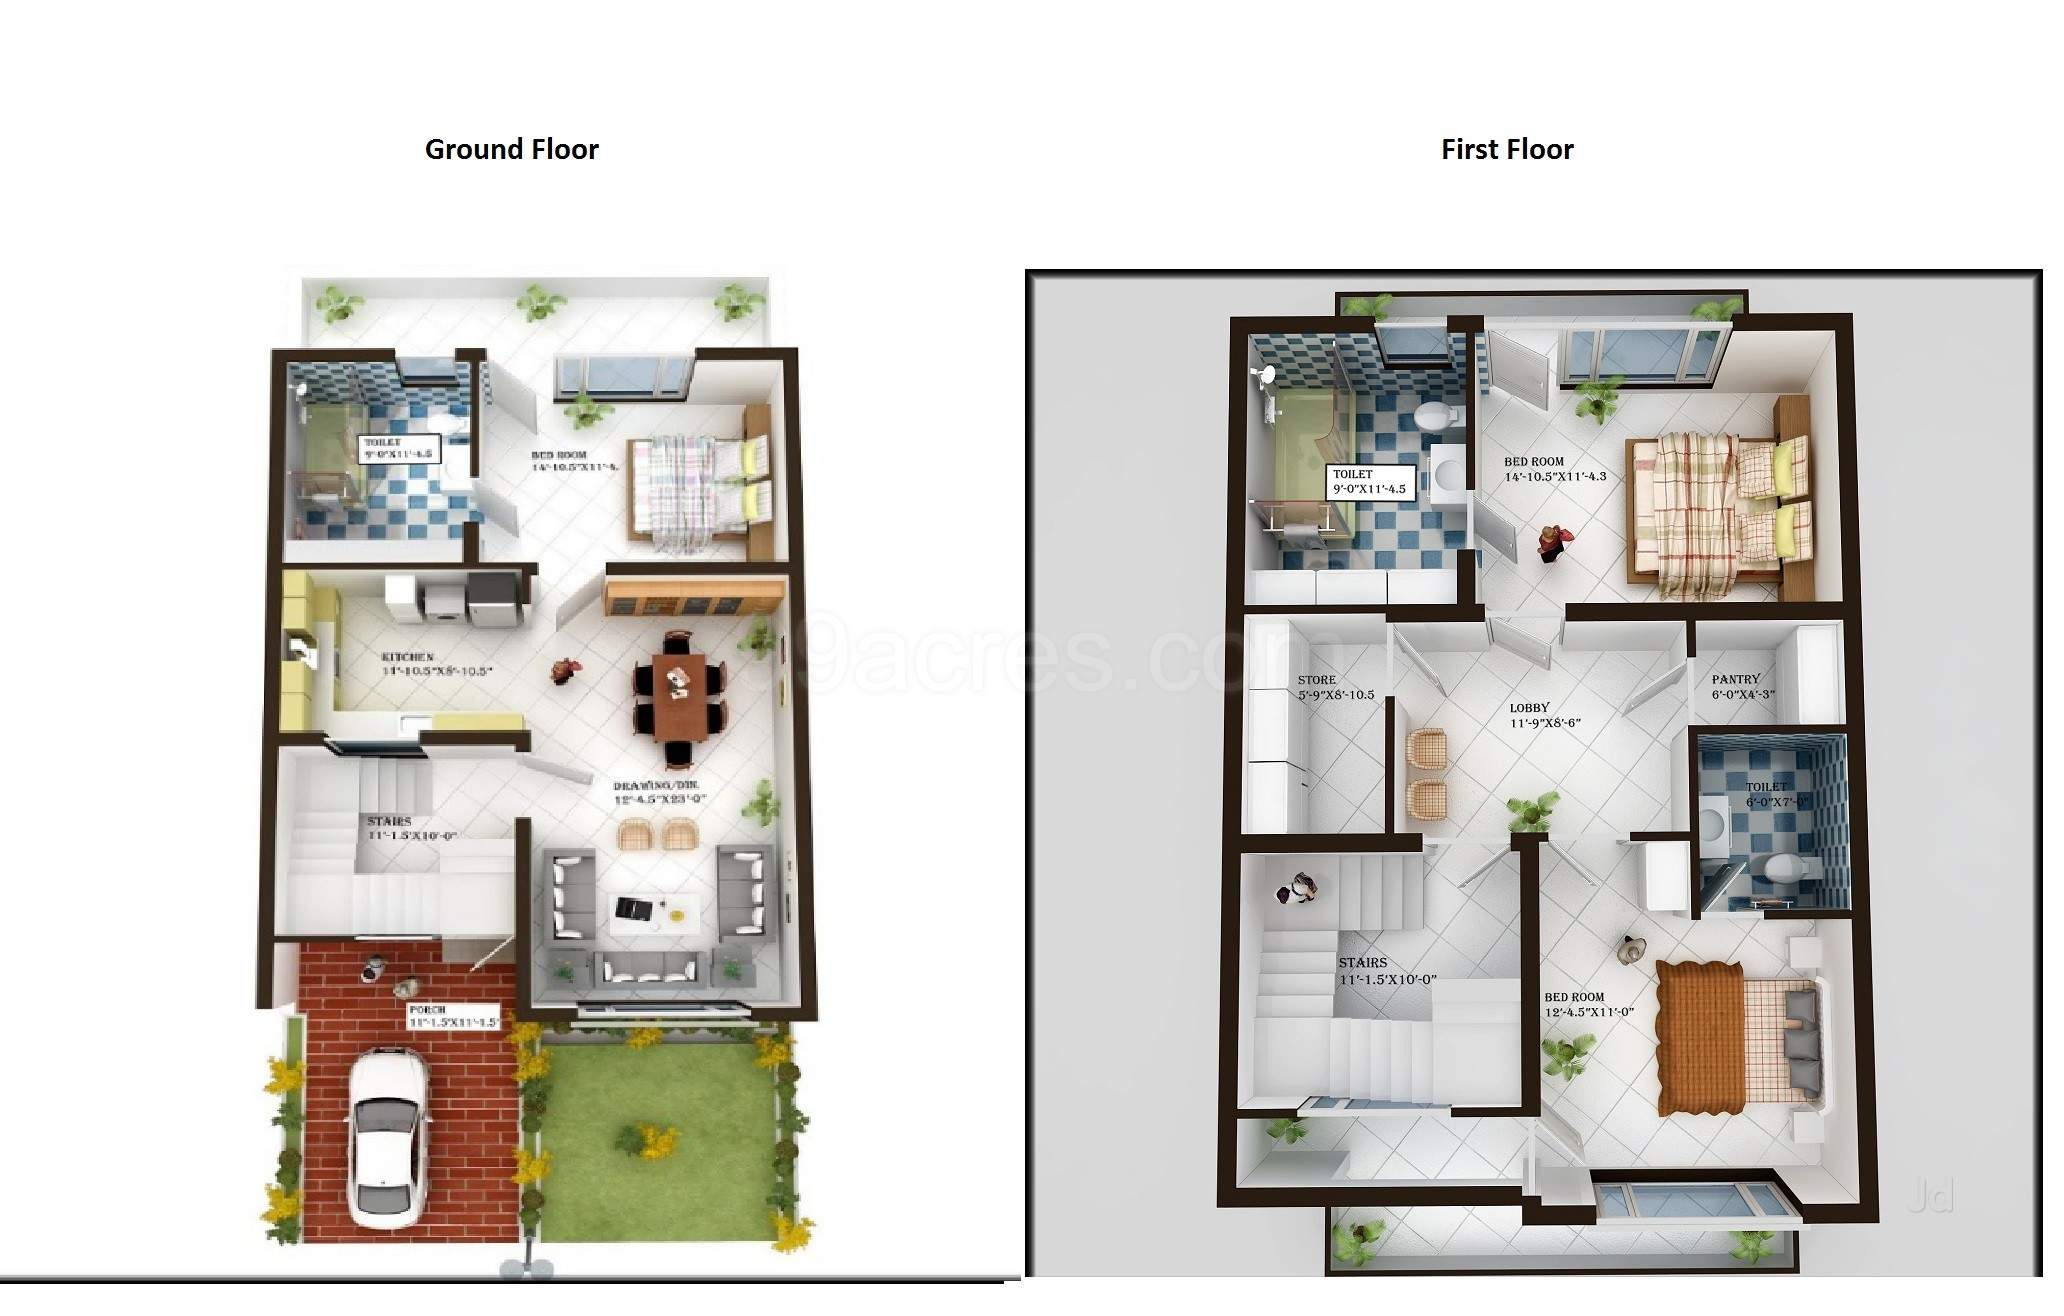 Interior Designers In Chandigarh The Architects Collaborative Phase 2 Chandigarh Punjab Nearmetrade